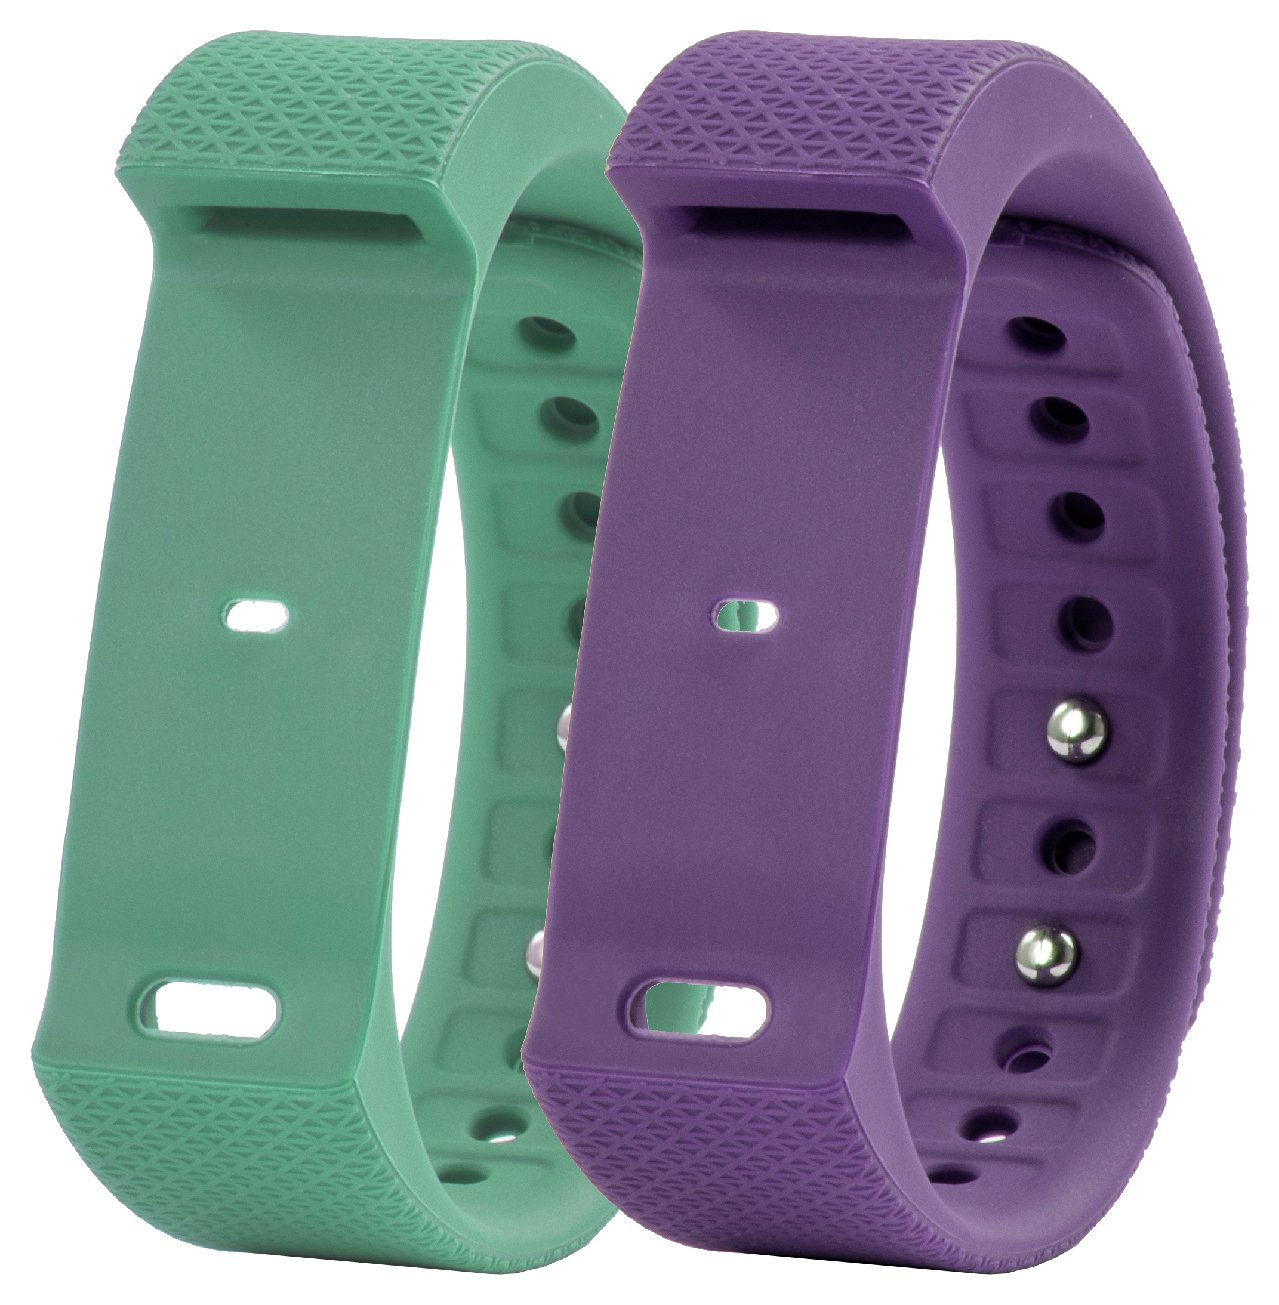 Nuband i-Touch Plum & Mint Green Replacement Band - Twinpack